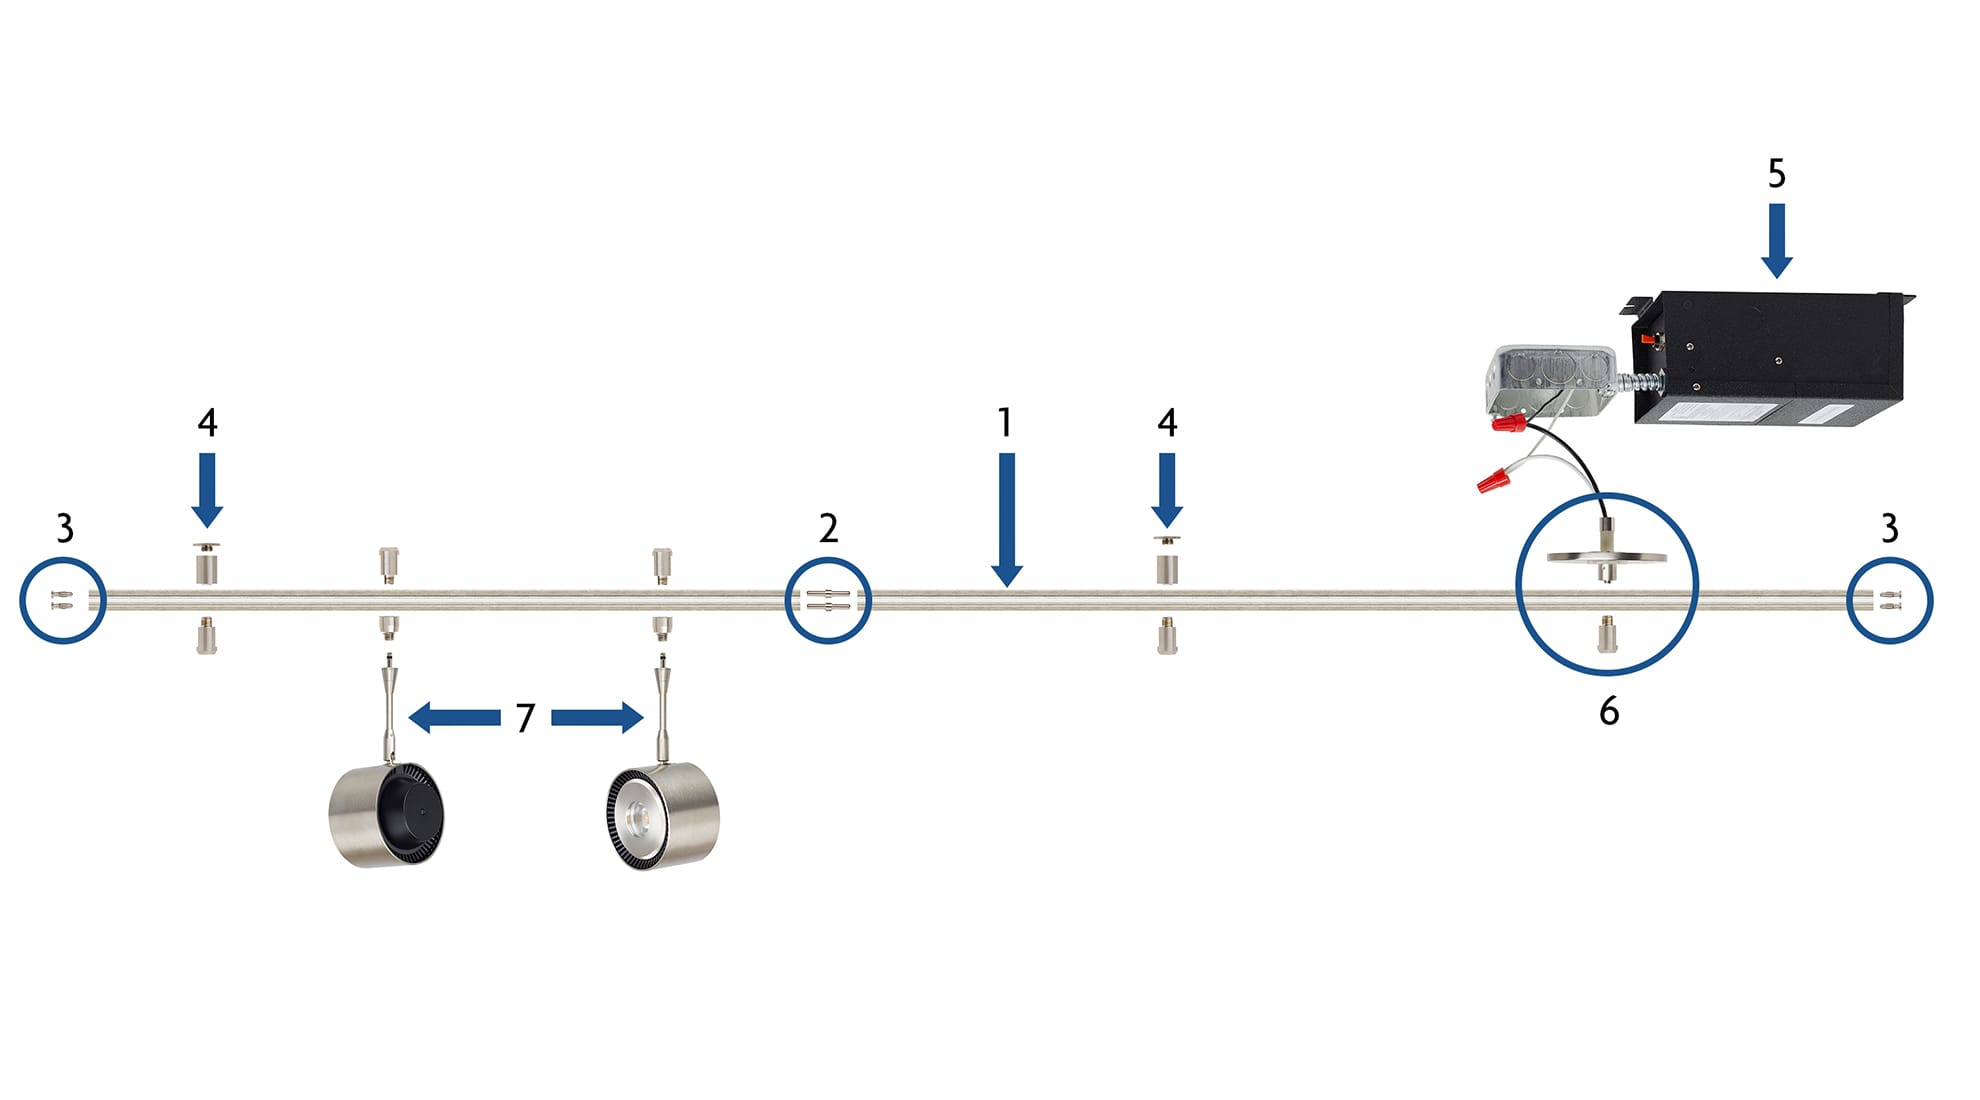 The Anatomy of a Monorail System